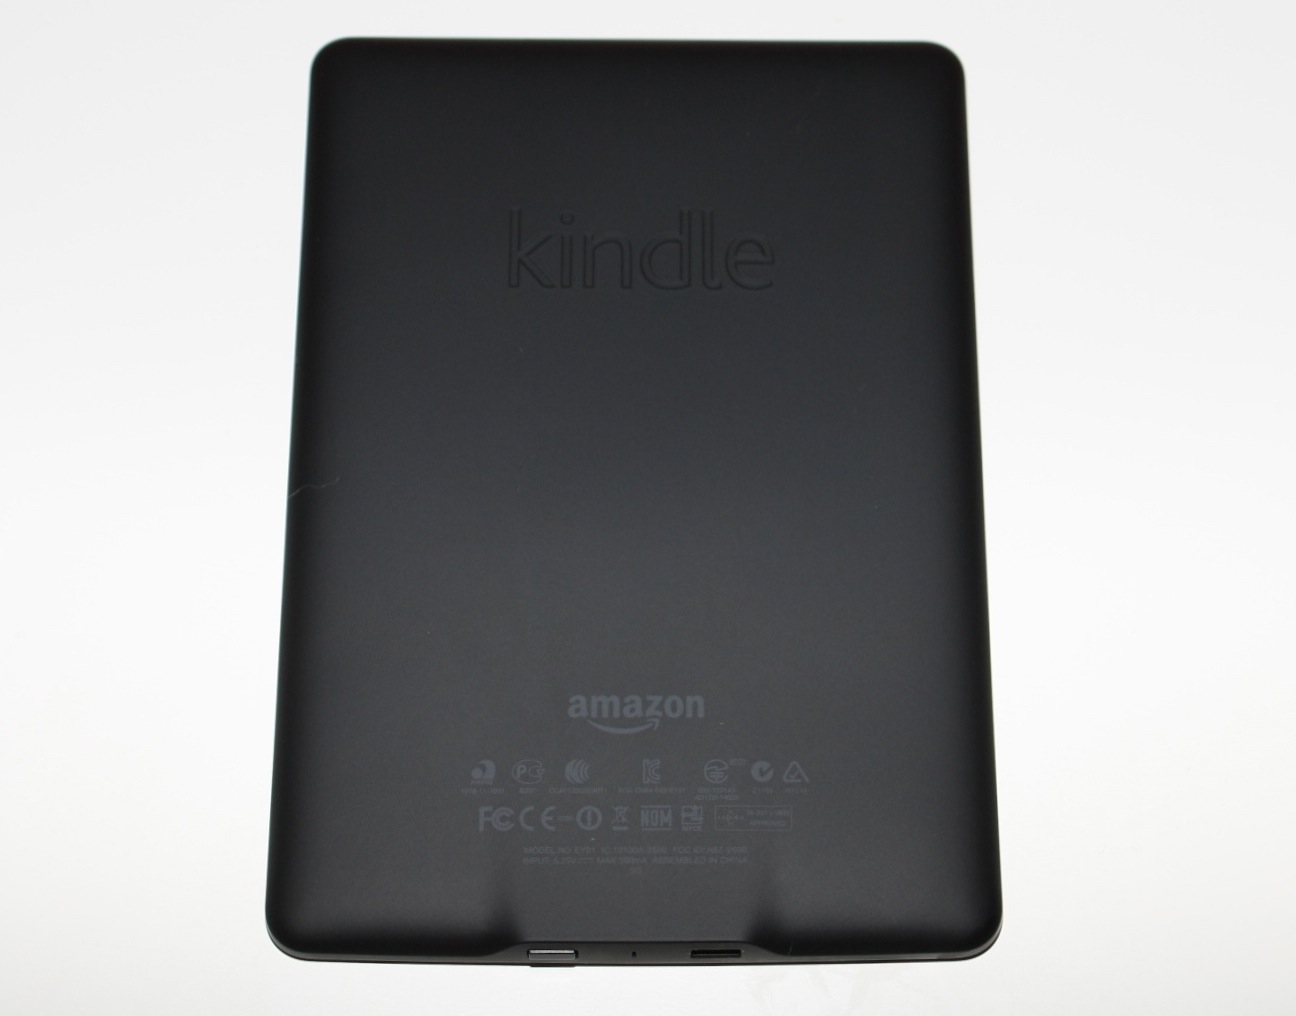 The back of the Kindle Paperwhite.